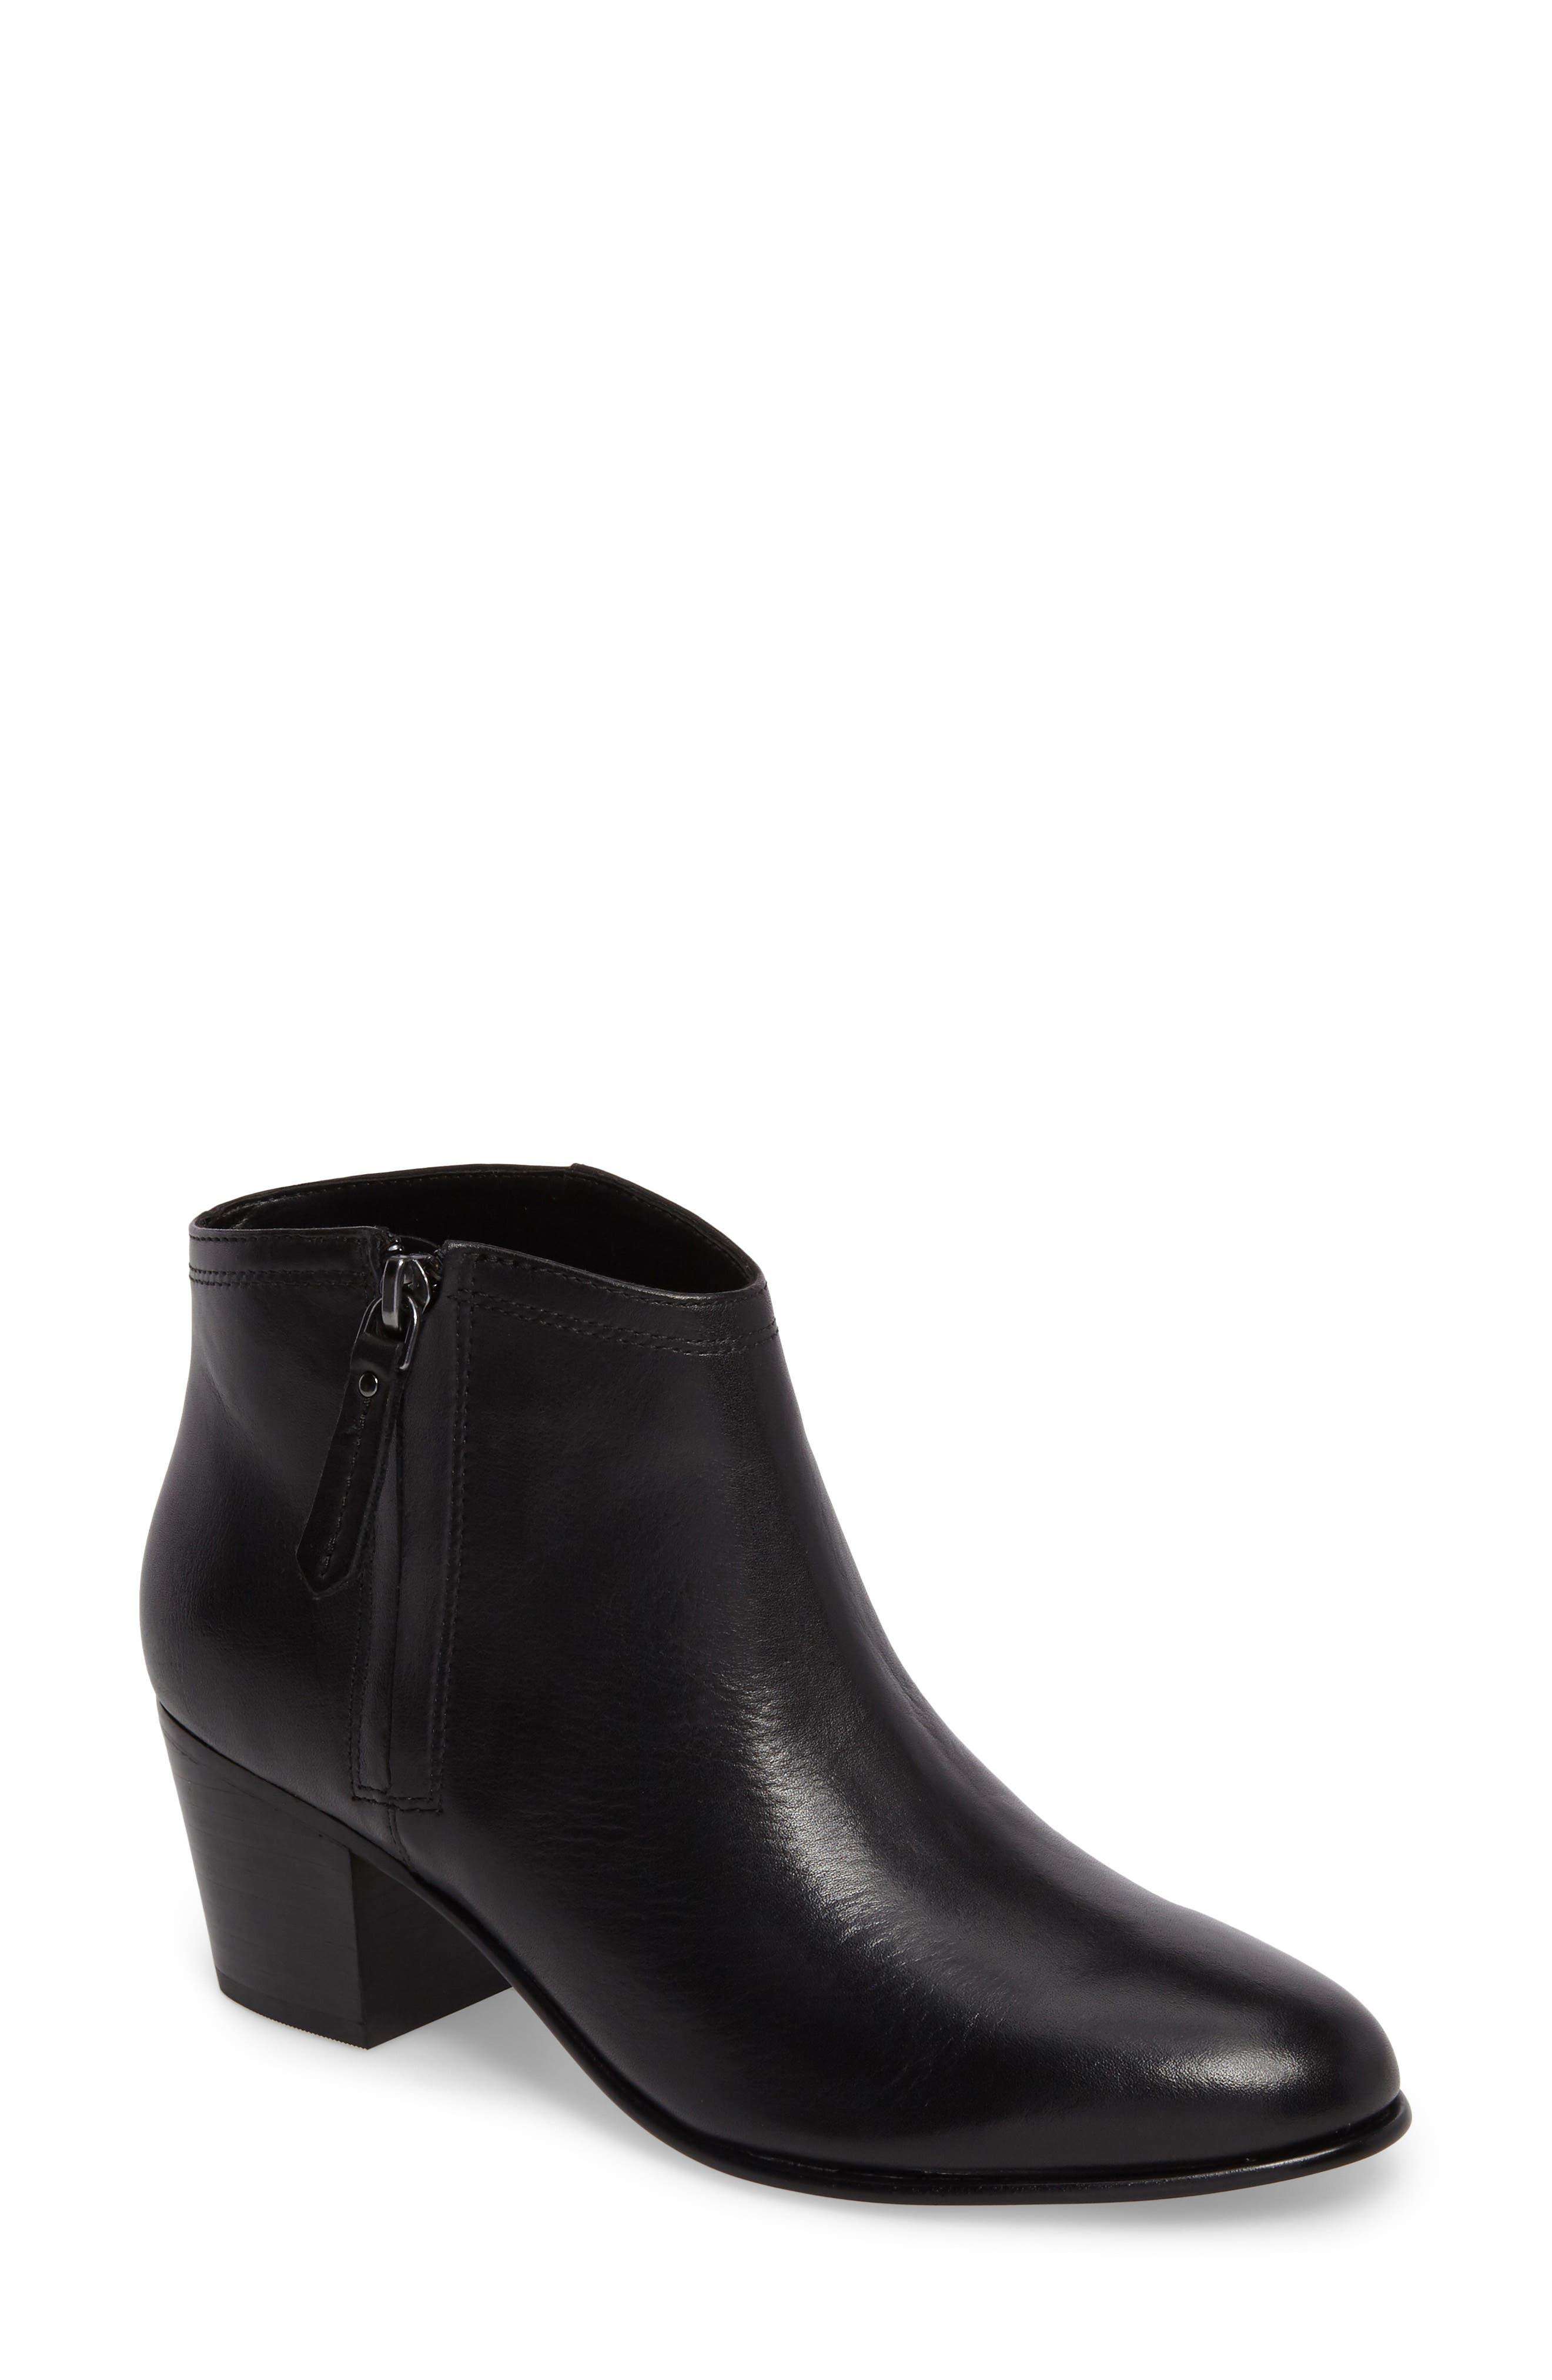 Maypearl Alice Bootie,                         Main,                         color, 007